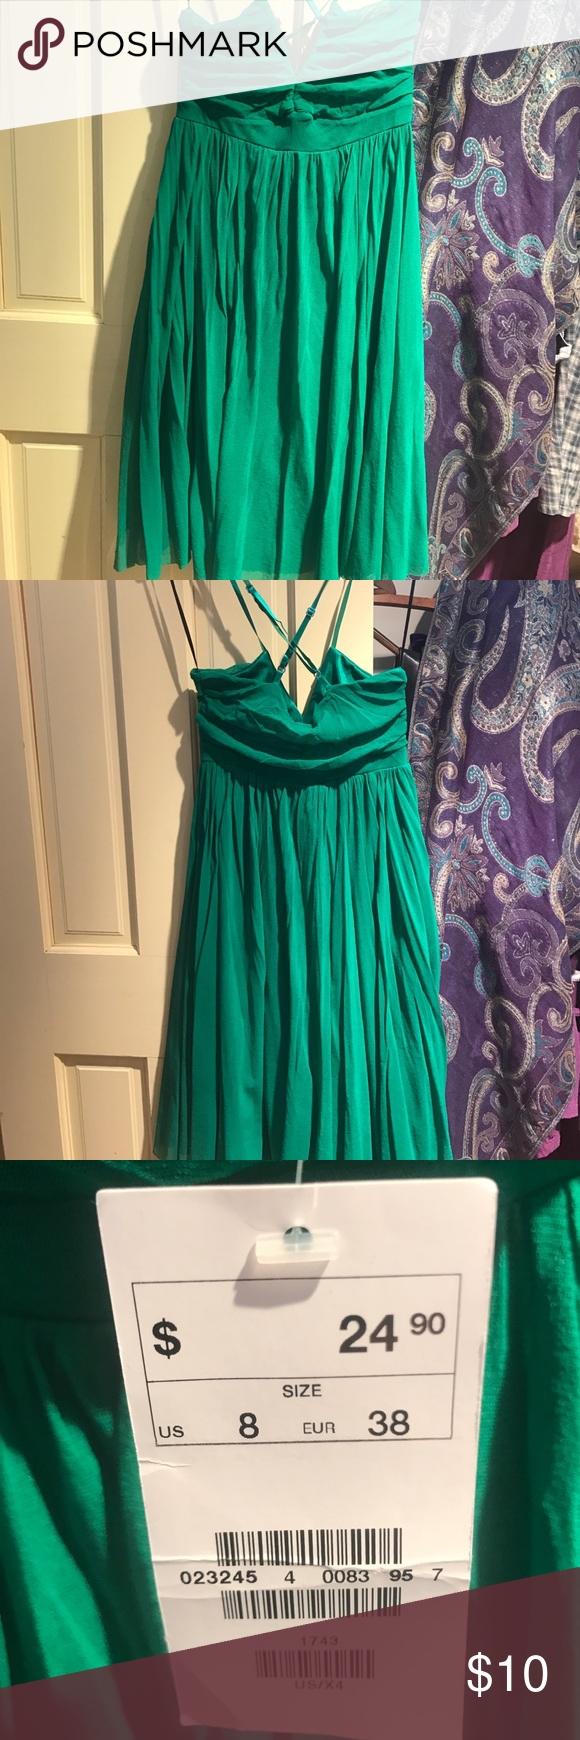 H&M party dress | Crossover, Princess and Customer support